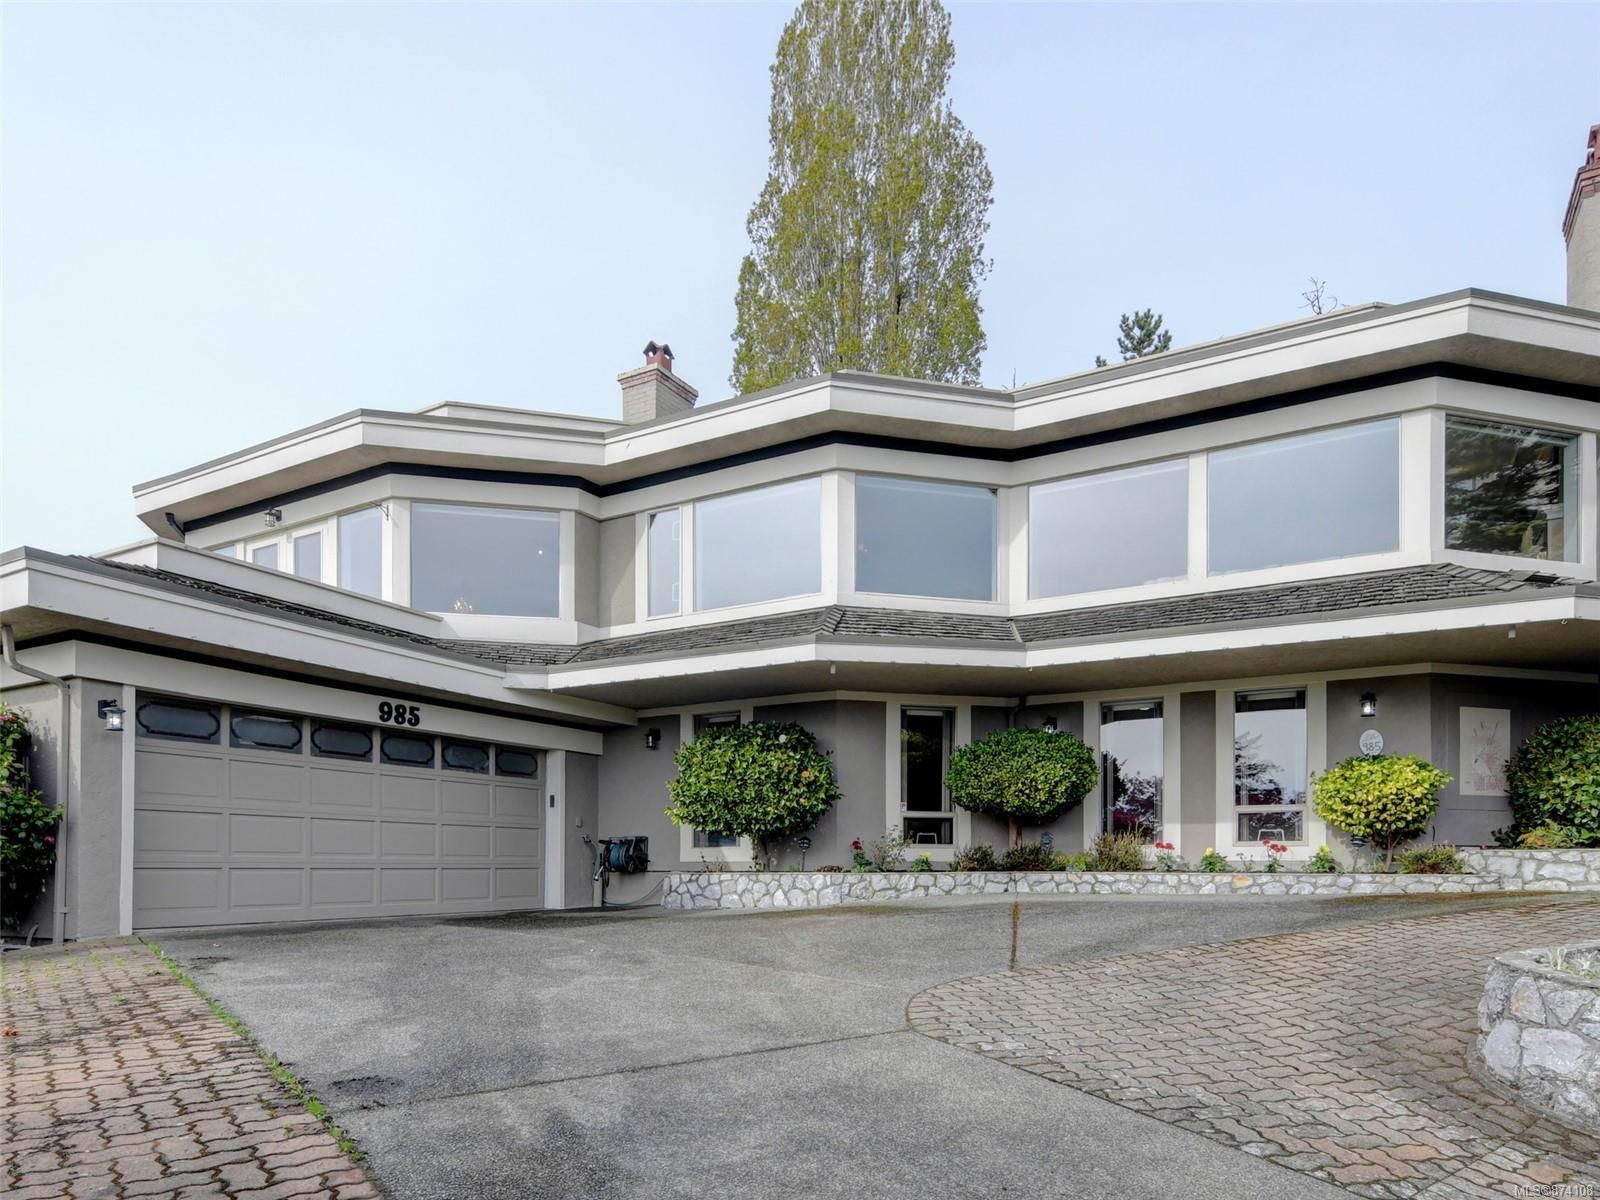 Main Photo: 985 Seapearl Pl in : SE Cordova Bay House for sale (Saanich East)  : MLS®# 874108